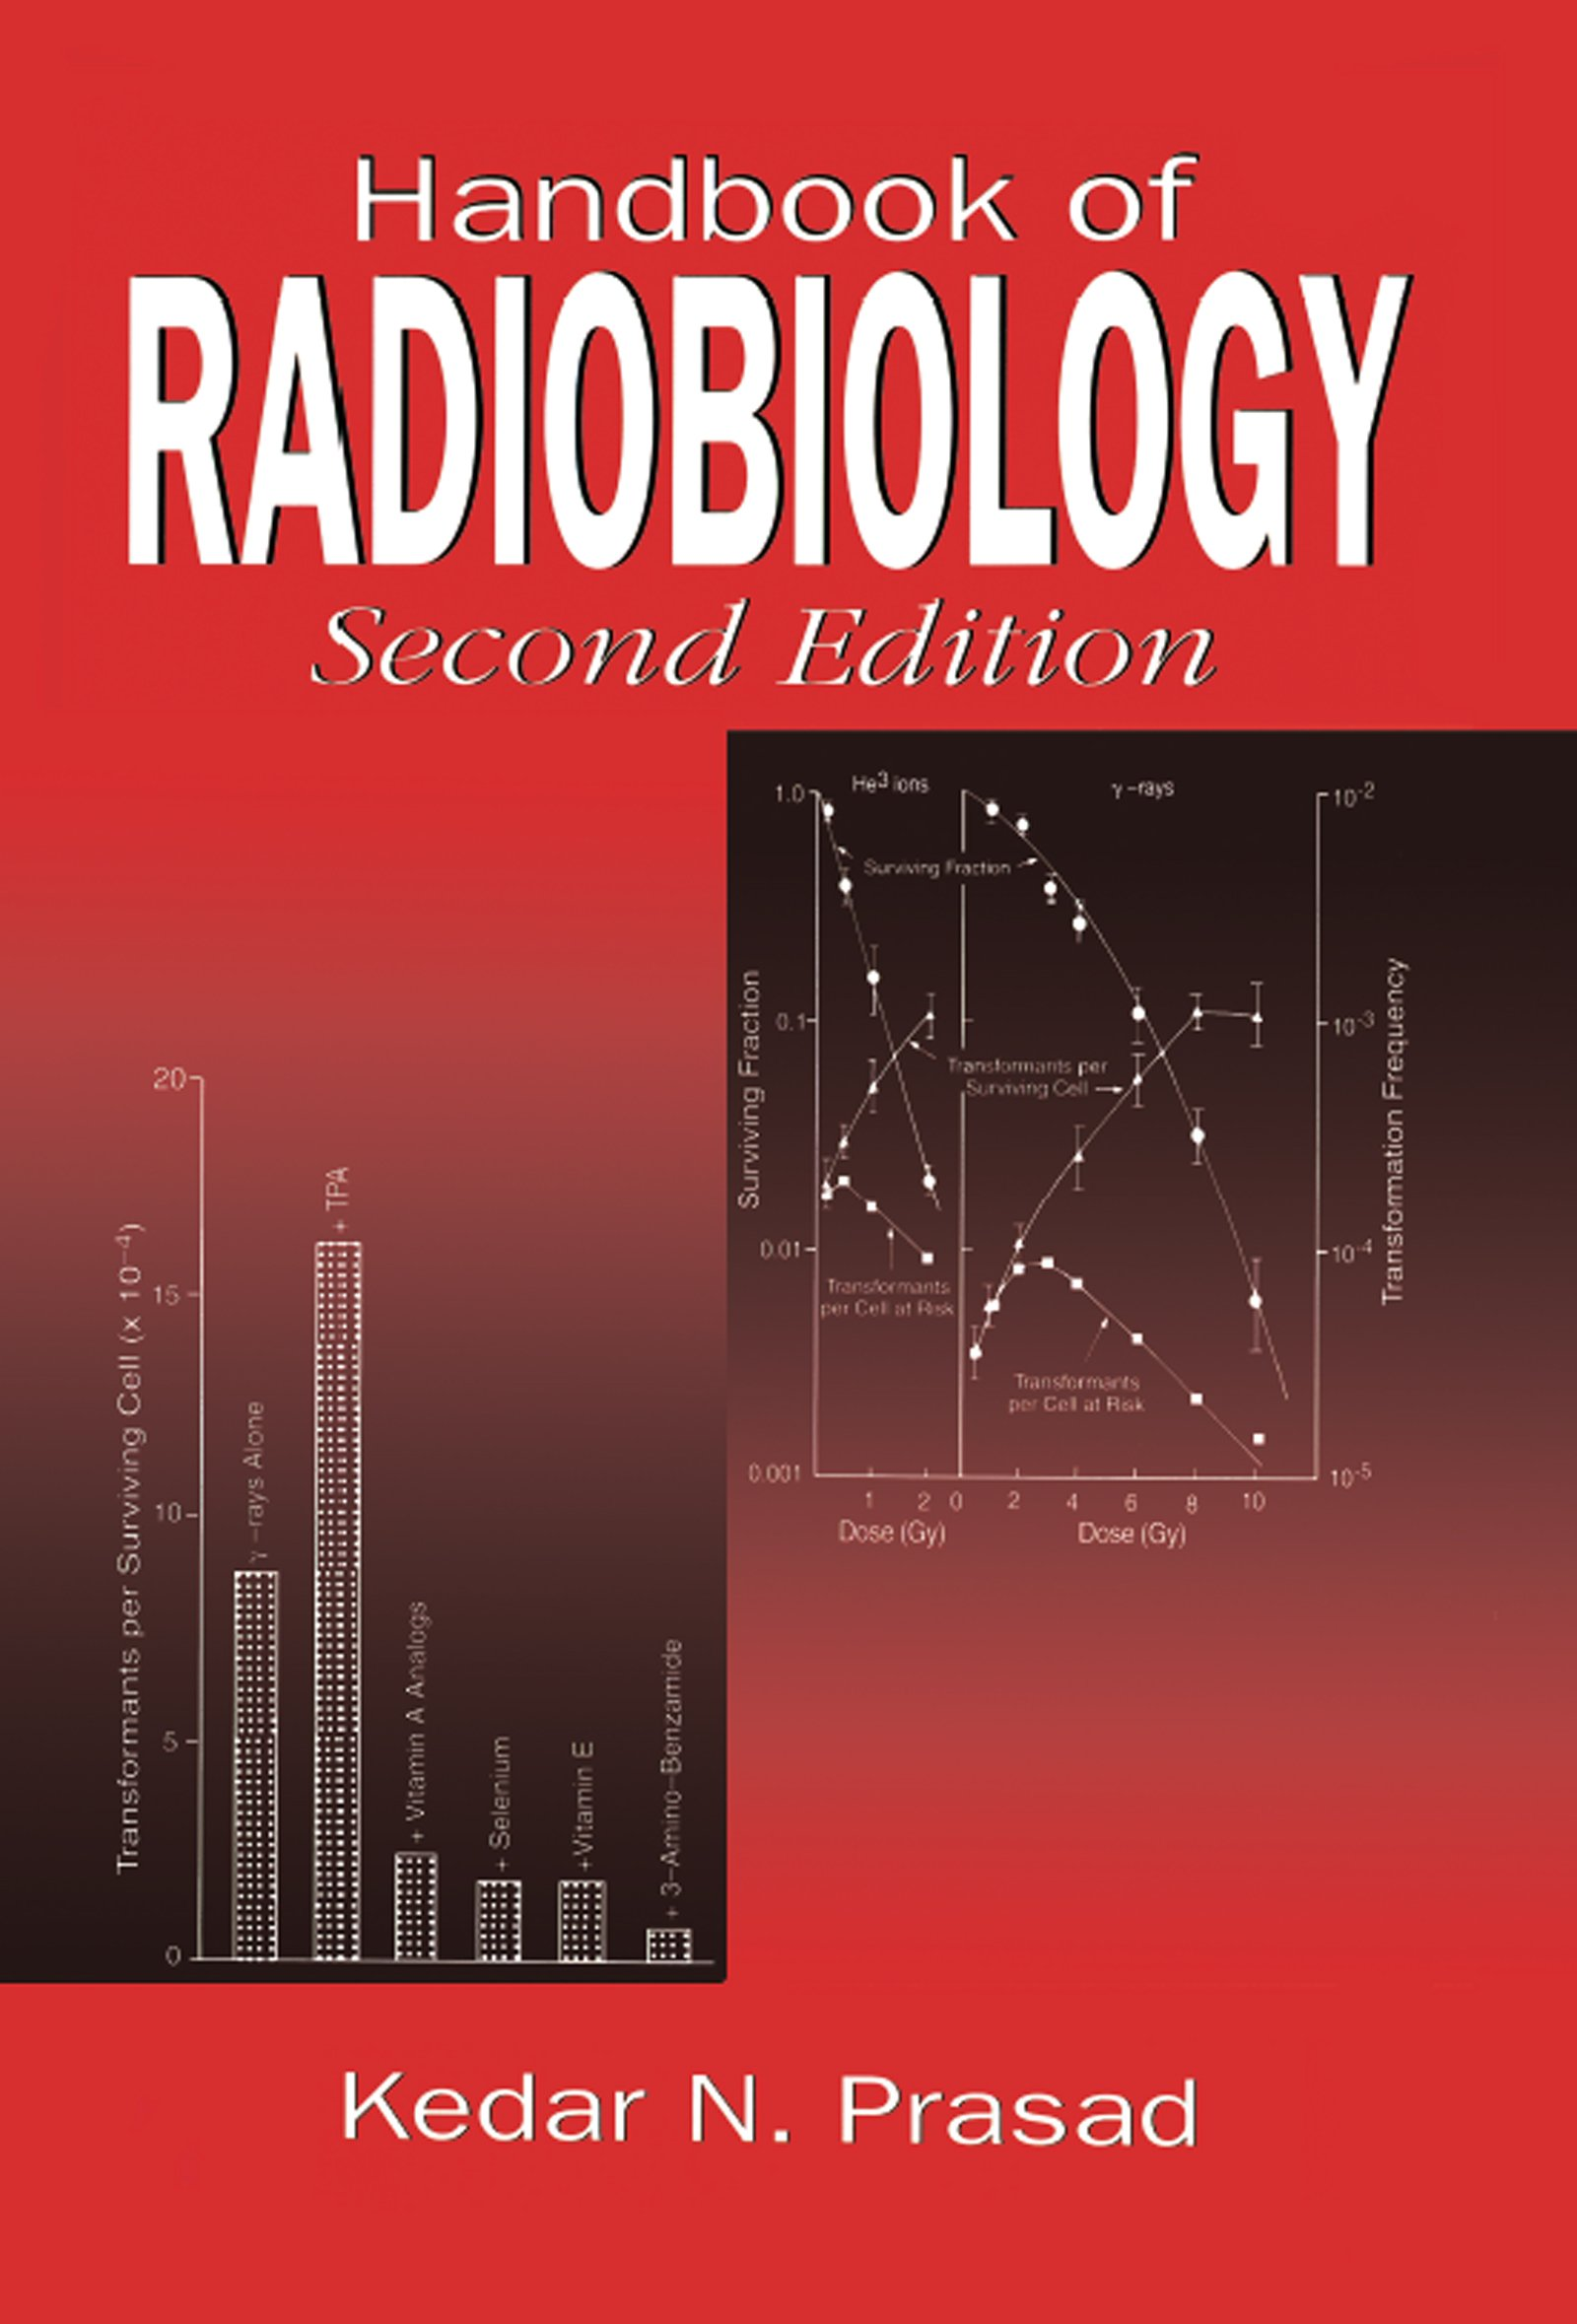 Handbook of Radiobiology